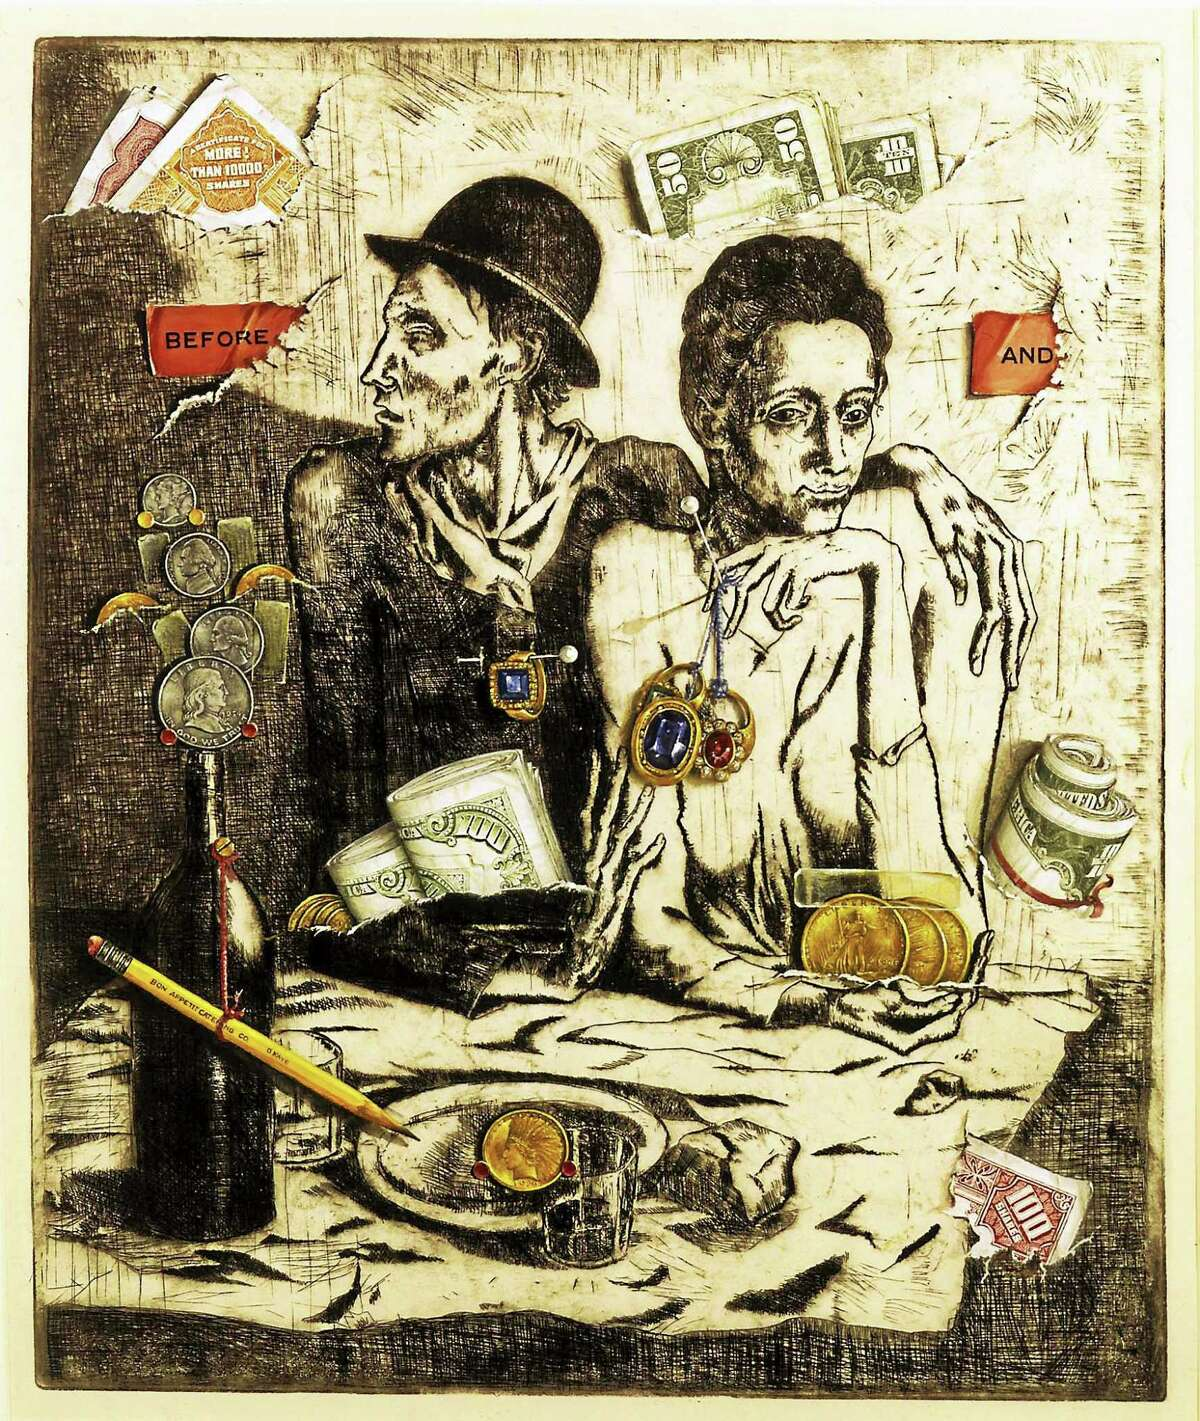 Contributed photos Otis Kaye, Before Taxes, 1956, Etching and gouache on paper, 18 x 15 in., Collection of the Board of Governors of the Federal Reserve System, Gift of Rachel and Nathan Young.